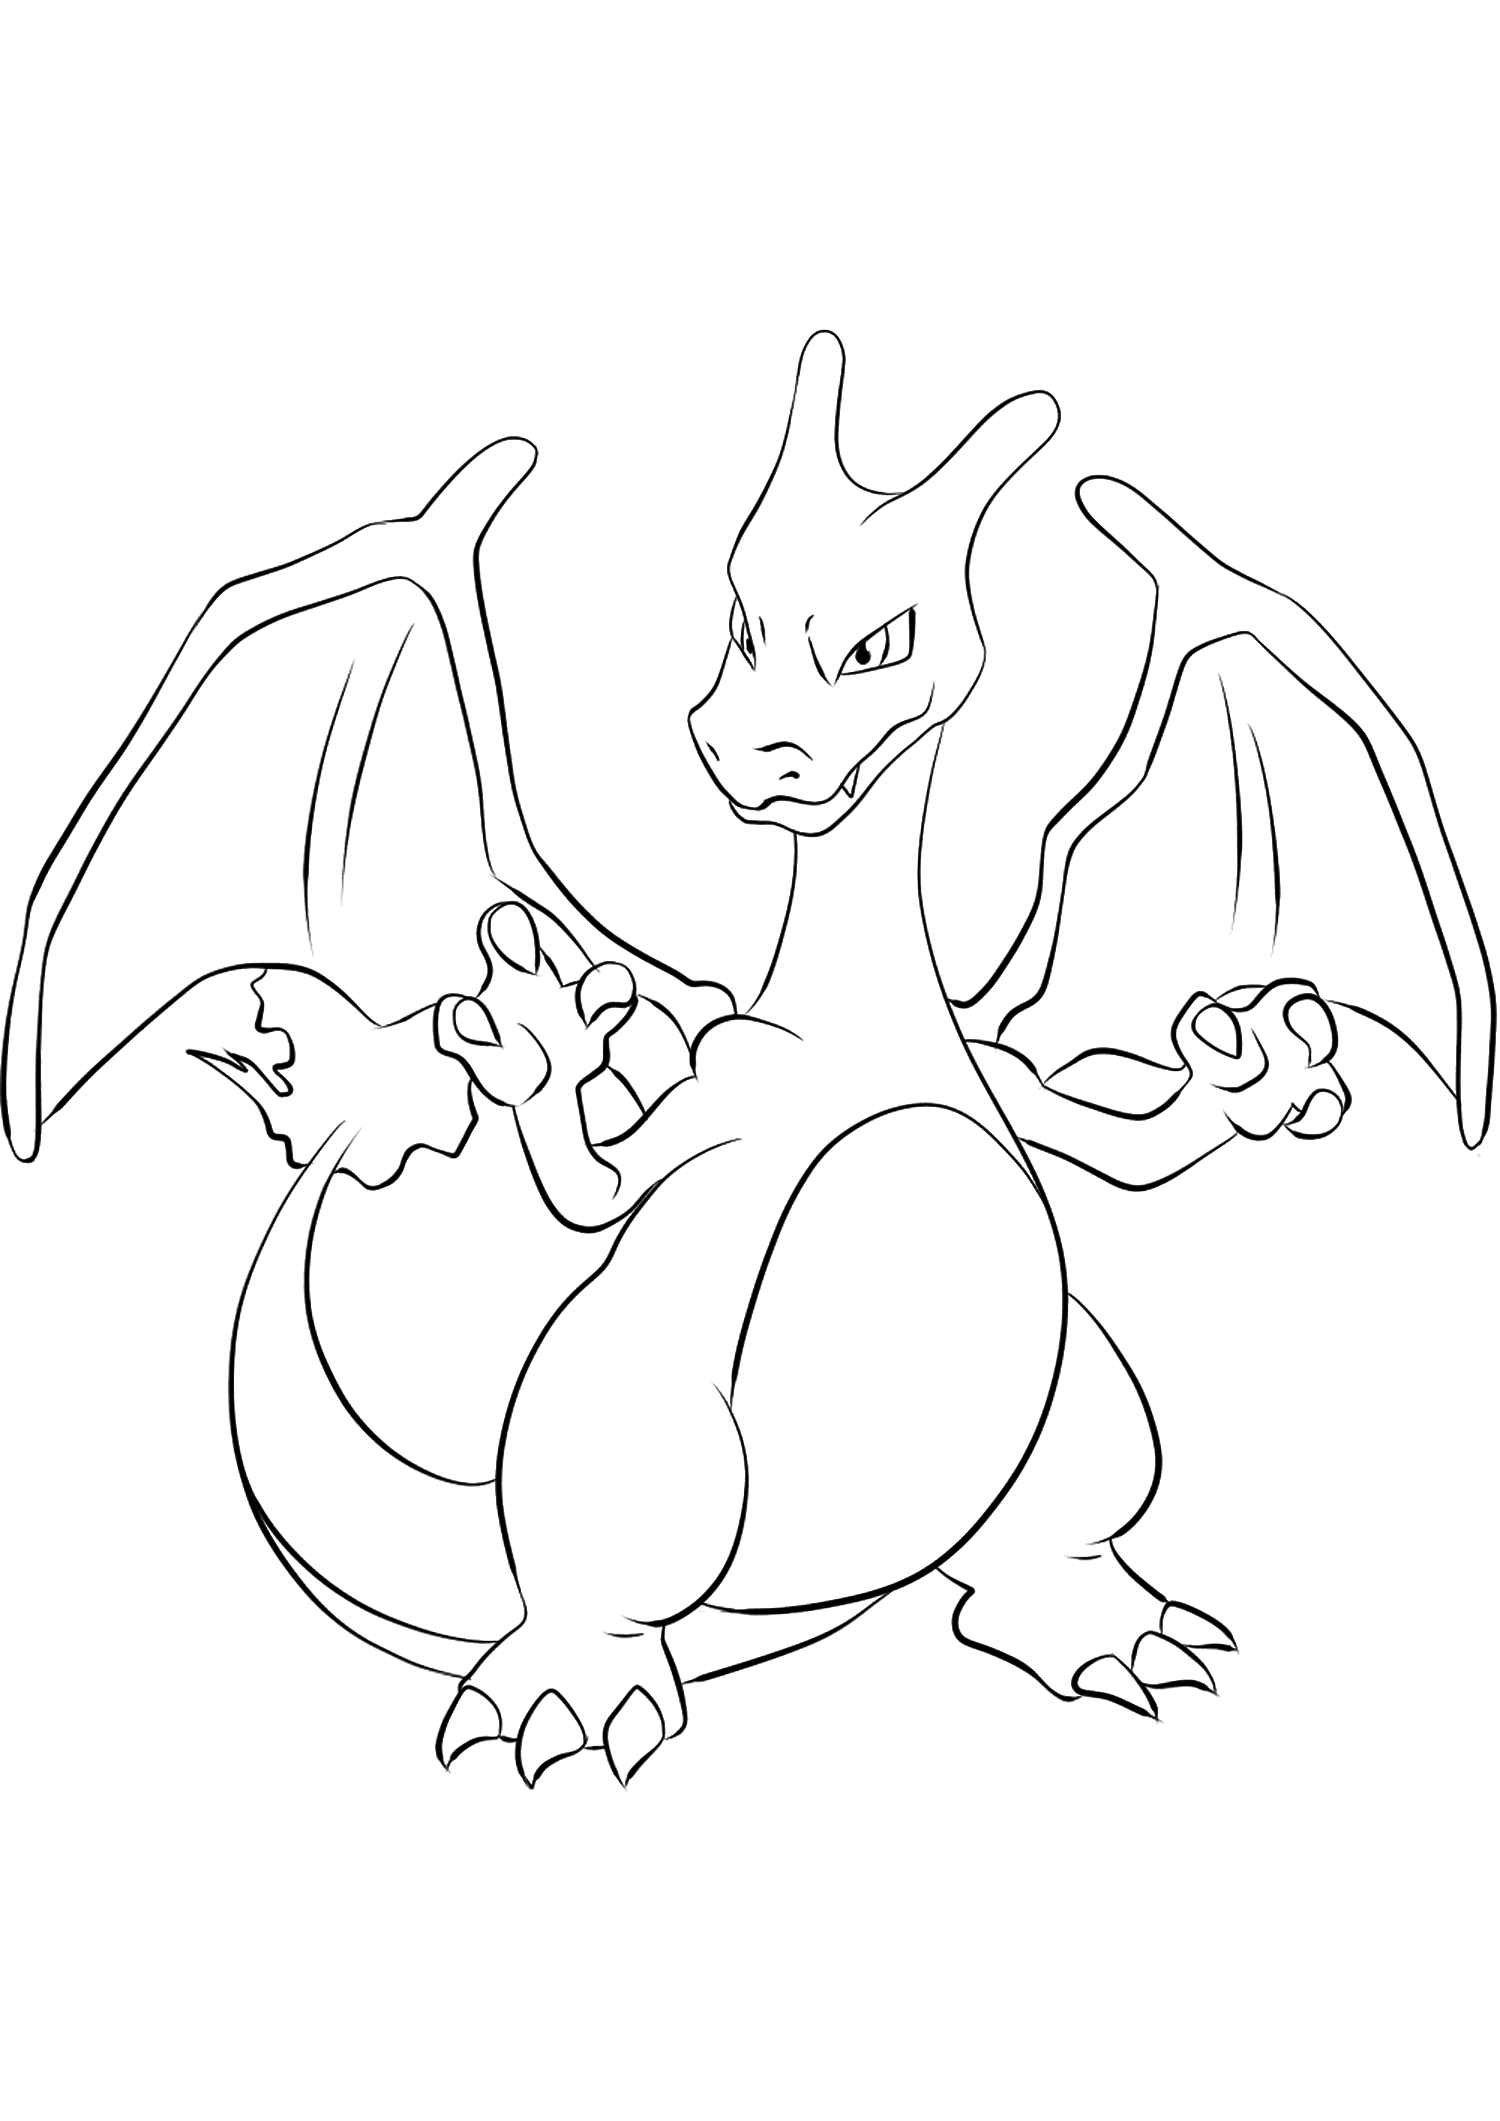 Charizard No 06 Pokemon Generation I All Pokemon Coloring Pages Kids Coloring Pages